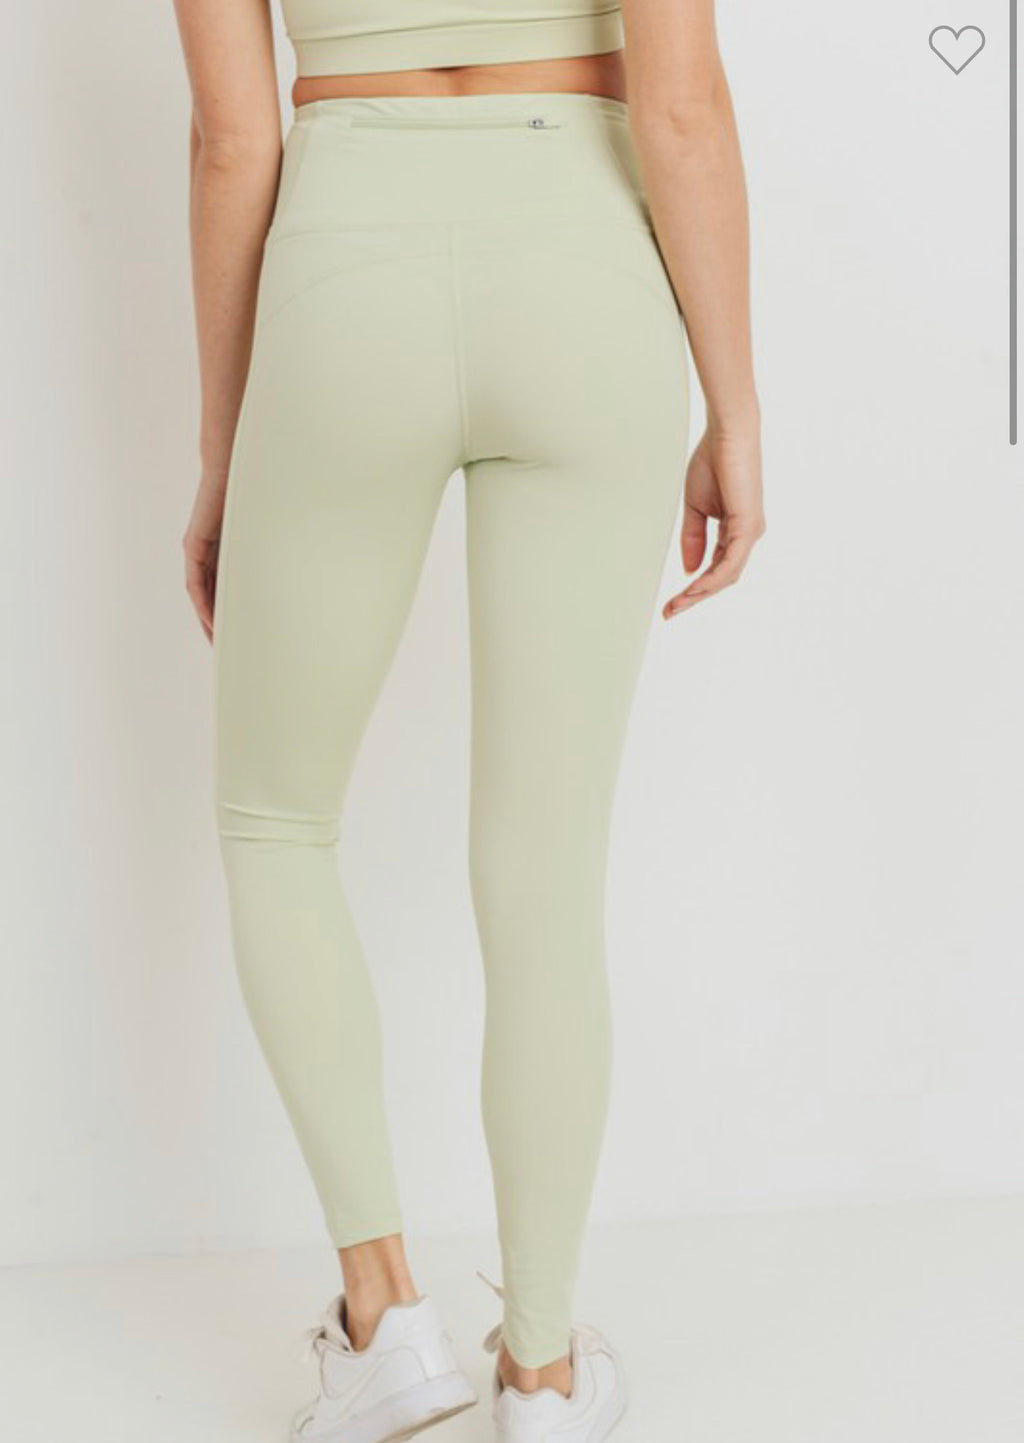 Moss Green Athletic Leggings